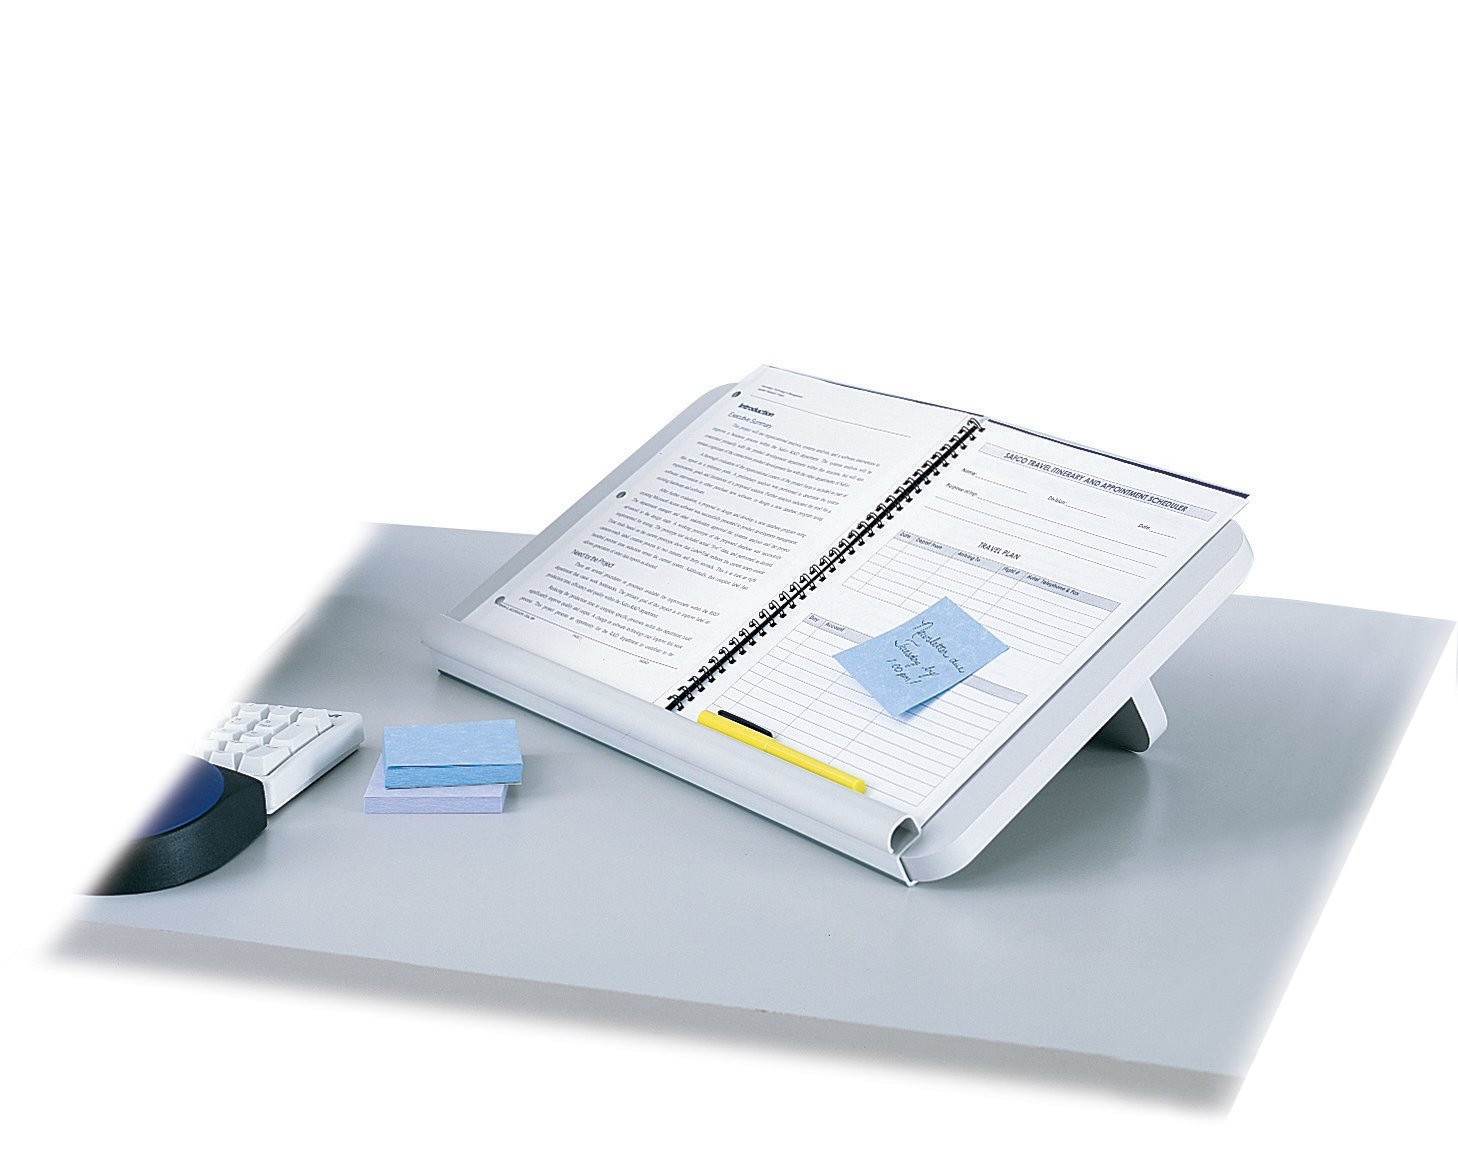 Safco Products 2156 Ergo-Comfort Read/Write Copy Stand, Light Gray